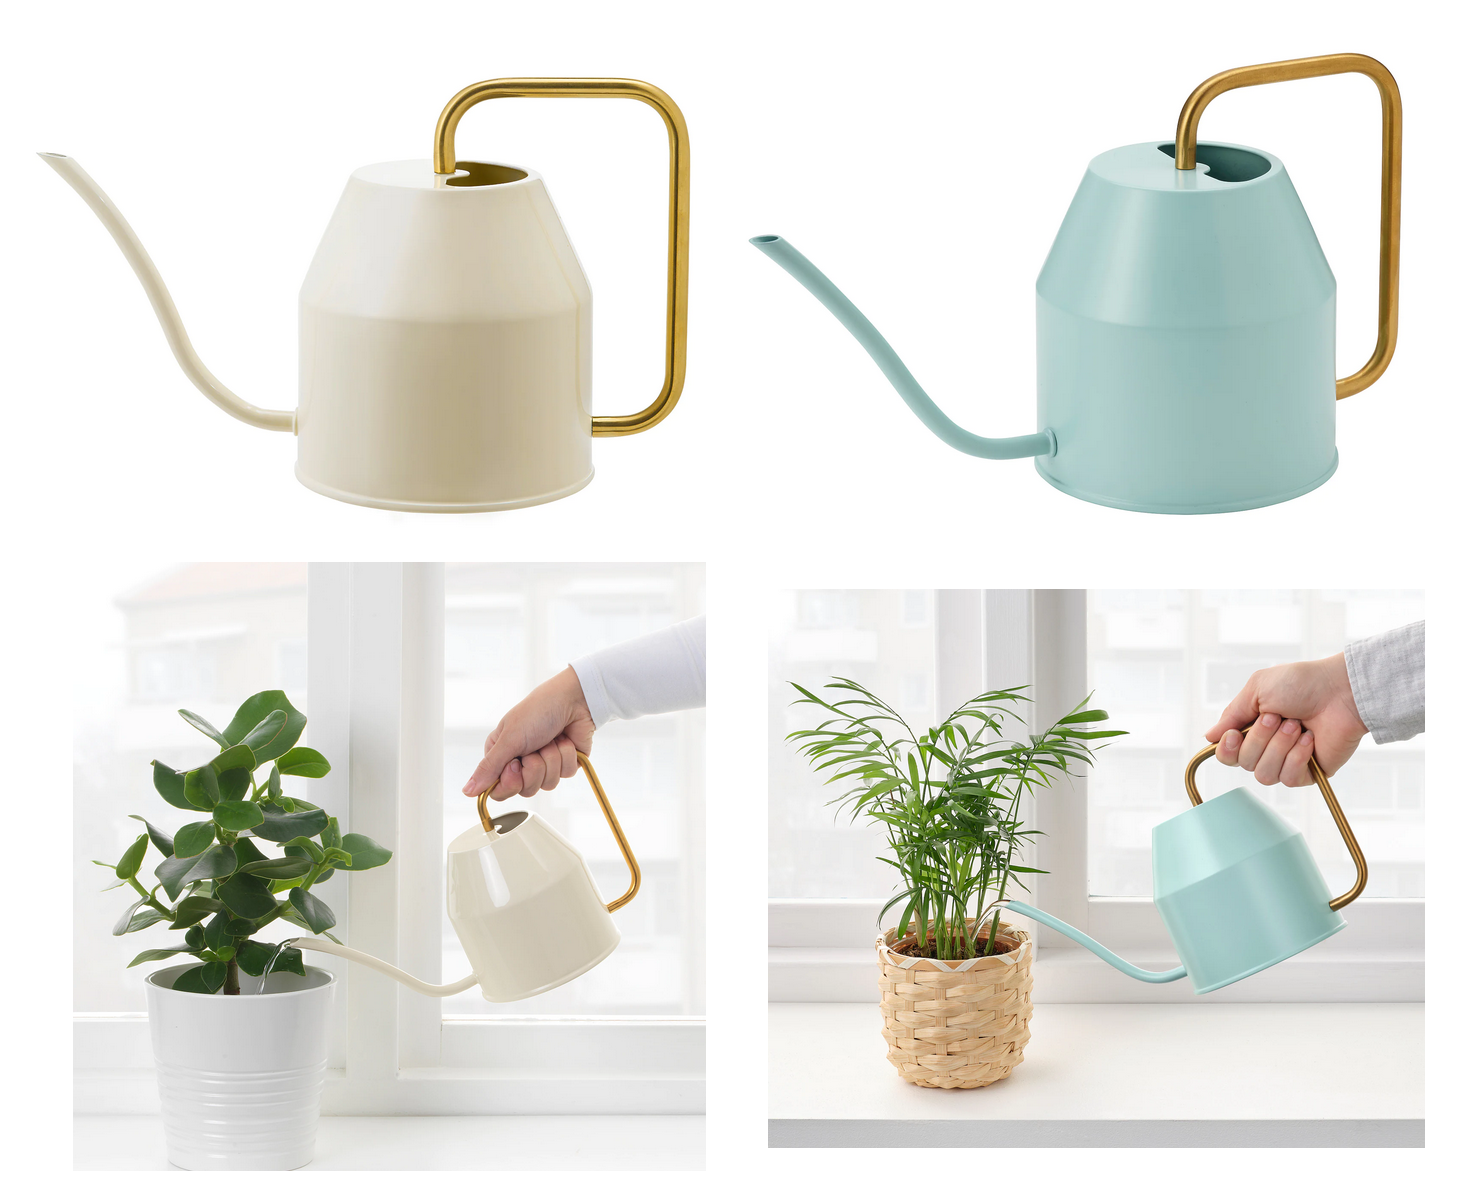 Ikea VATTENKRASSE Plant Watering Can Light Turquoise Ivory/Gold Colour 0.9 L New